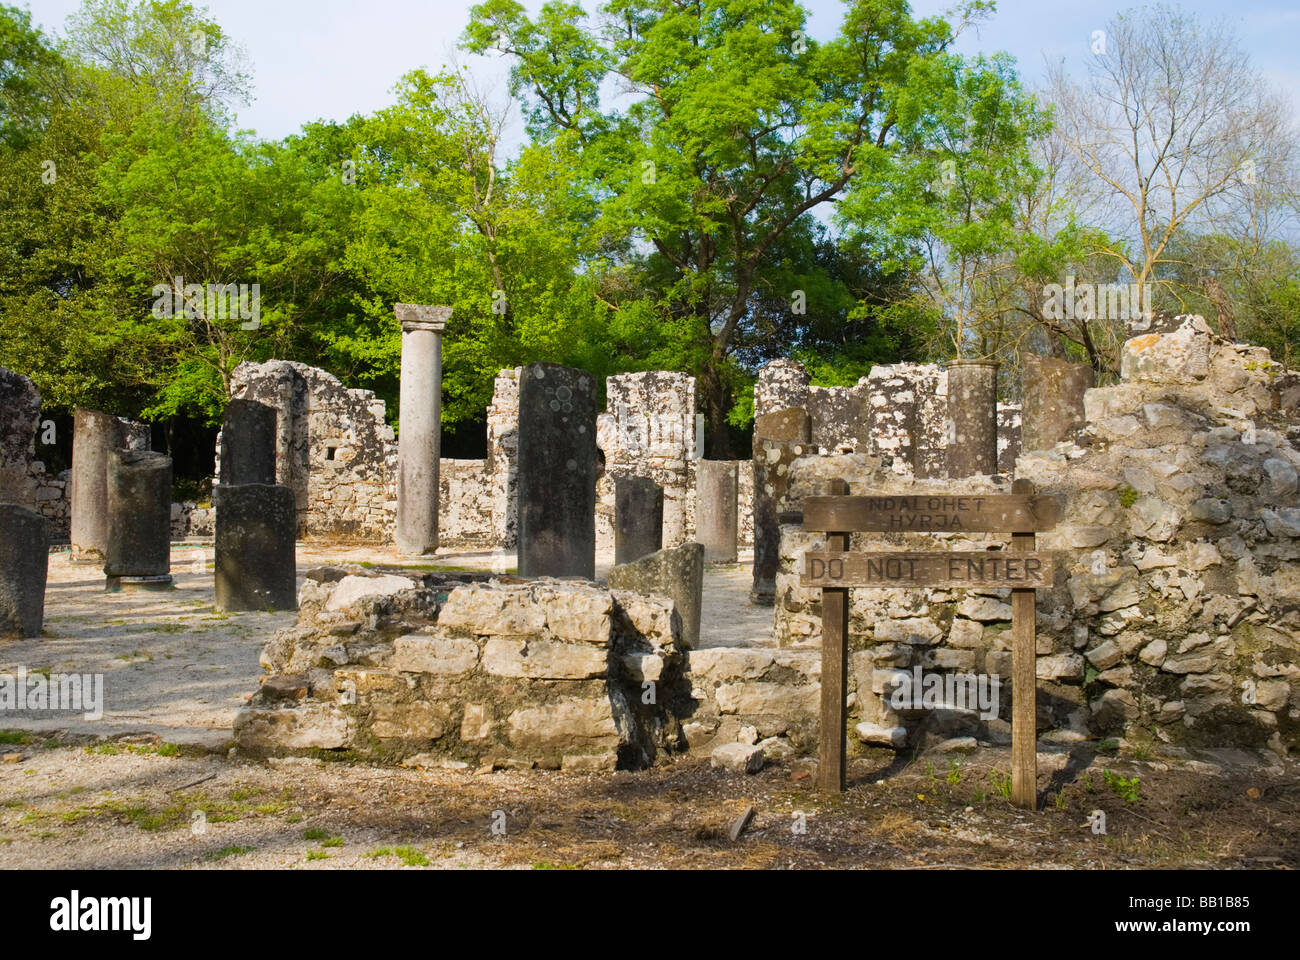 Ruins of the Baptistery in ancient Butrint Albania Europe - Stock Image